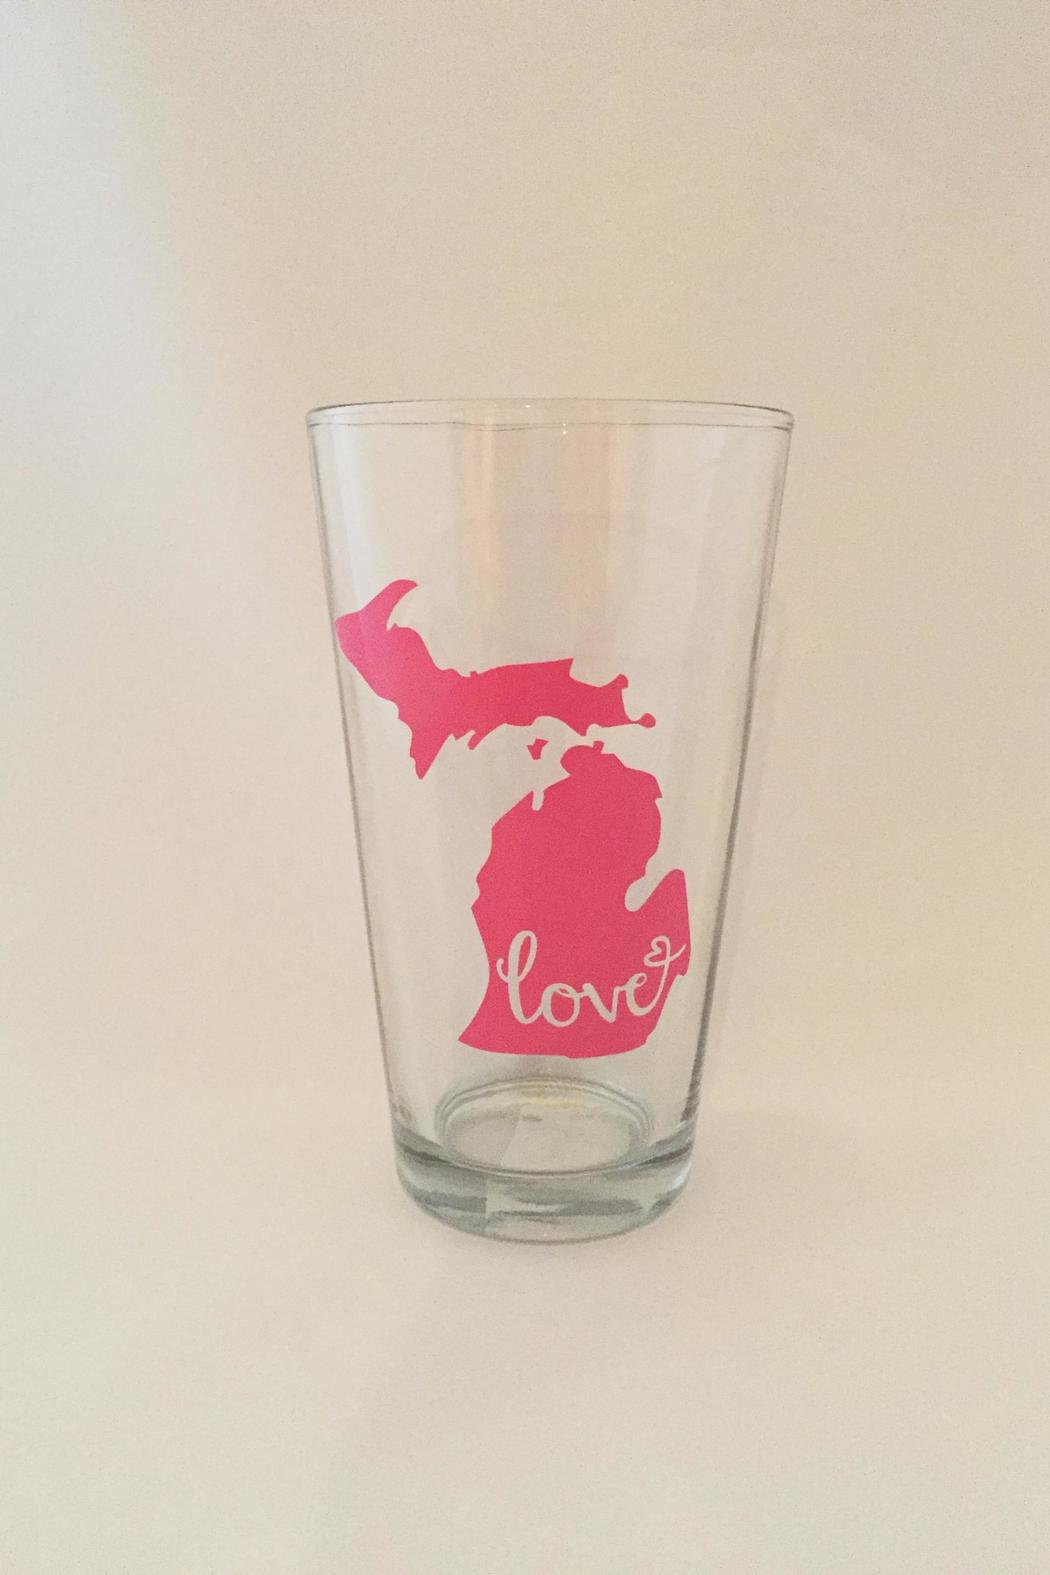 R.S.V.P. Michigan Love Glass - Main Image